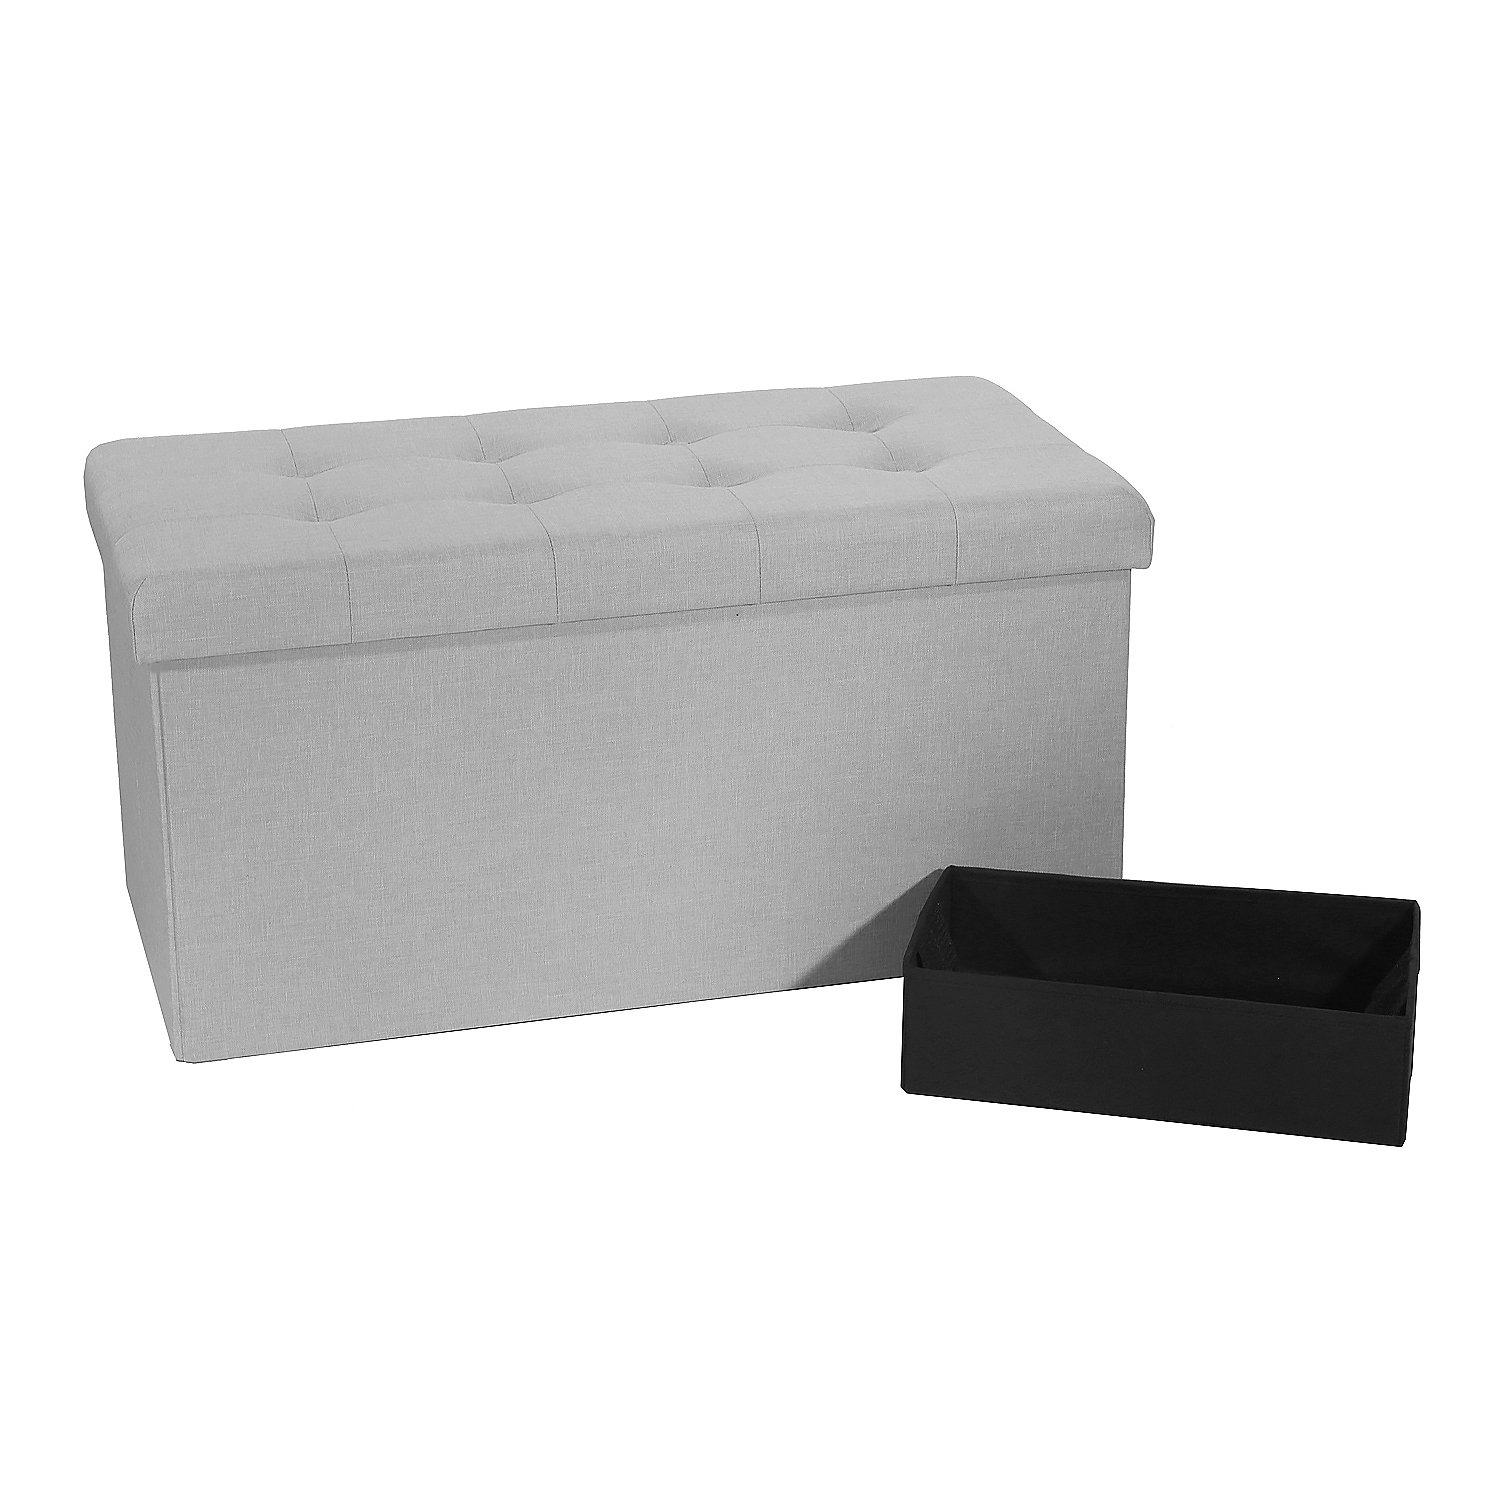 Seville Classics WEB367 Foldable Storage Bench/Footrest/Coffee Table Ottoman 31.5